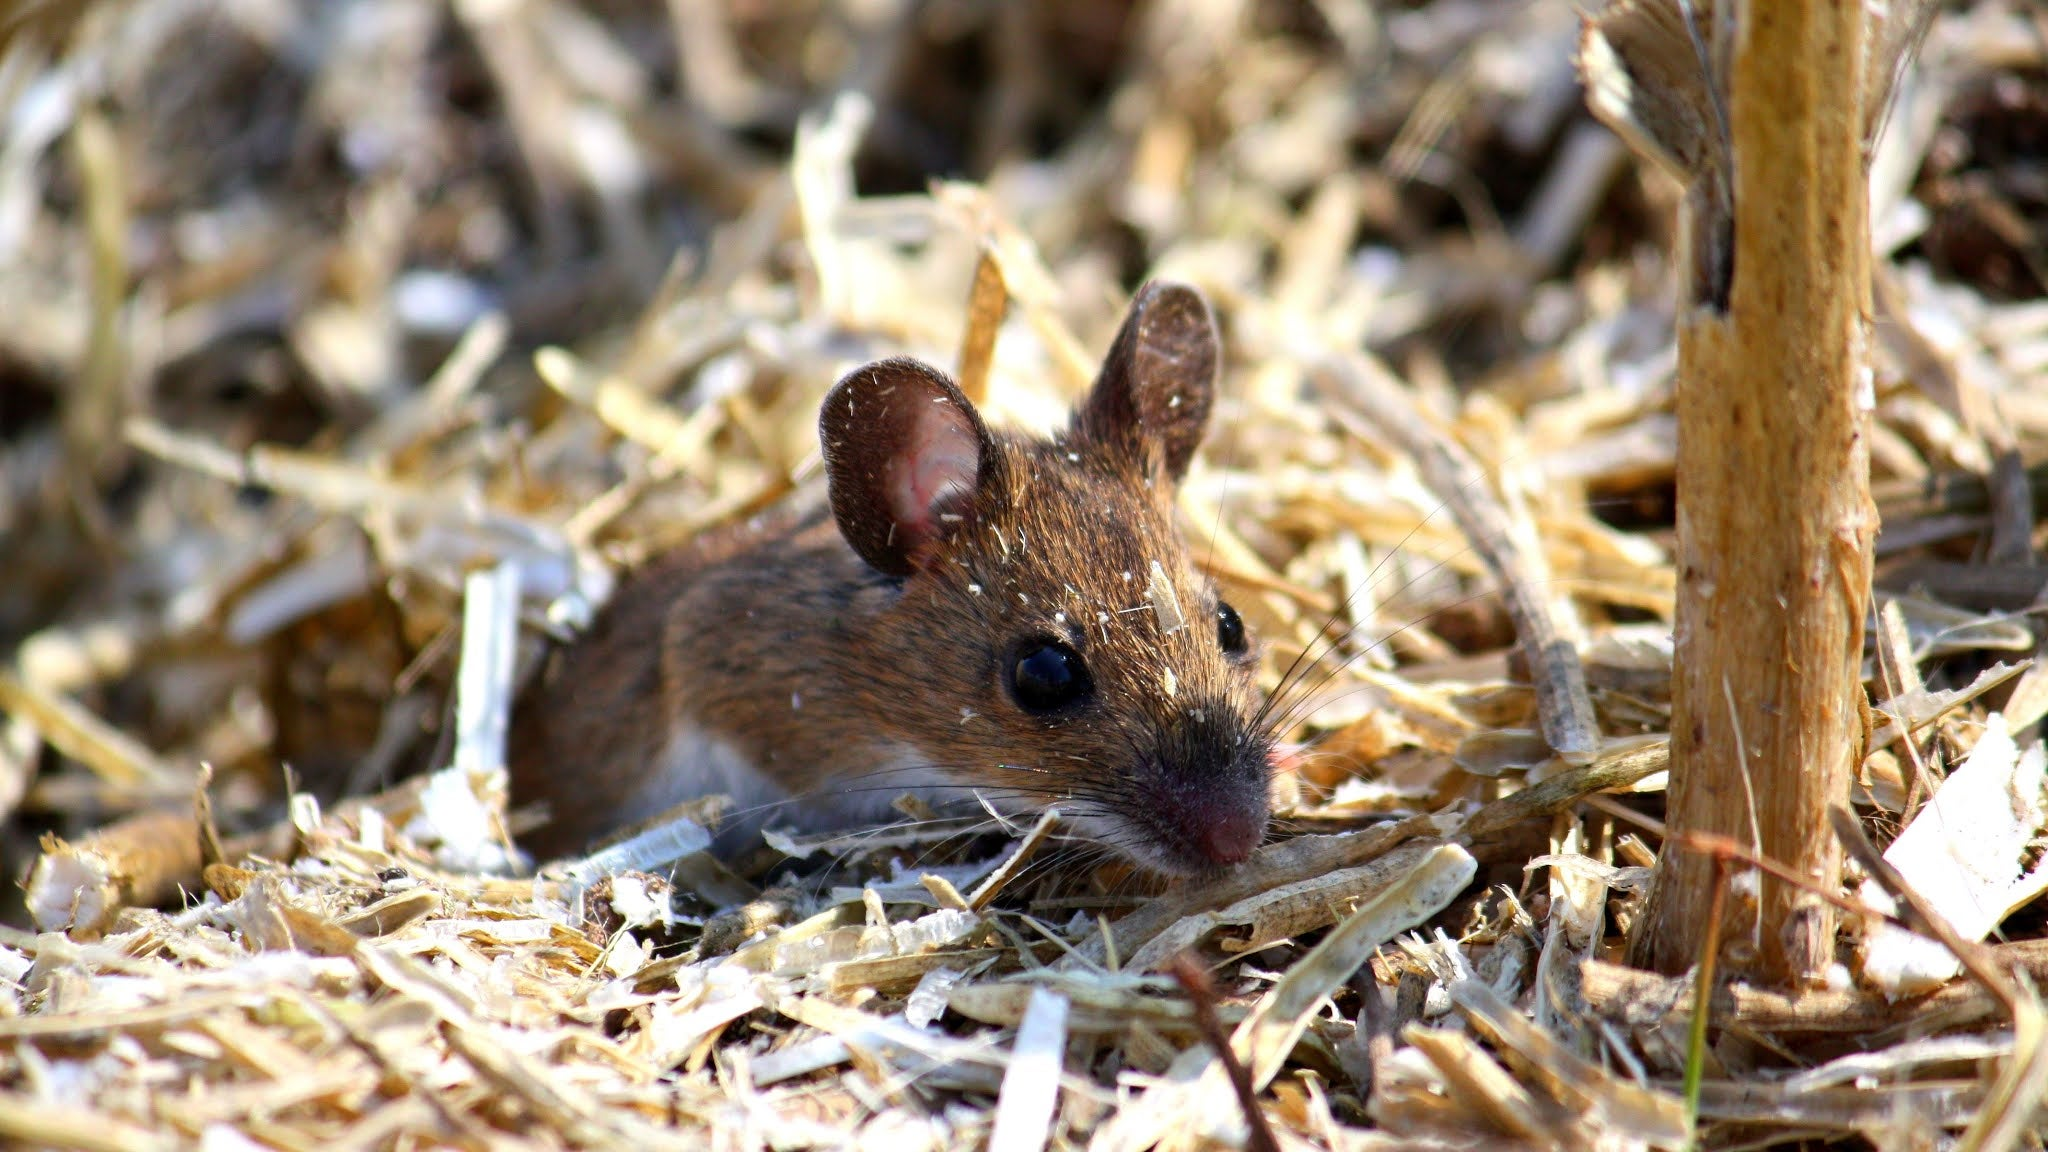 A photo of a mouse appearing out of wood chippings